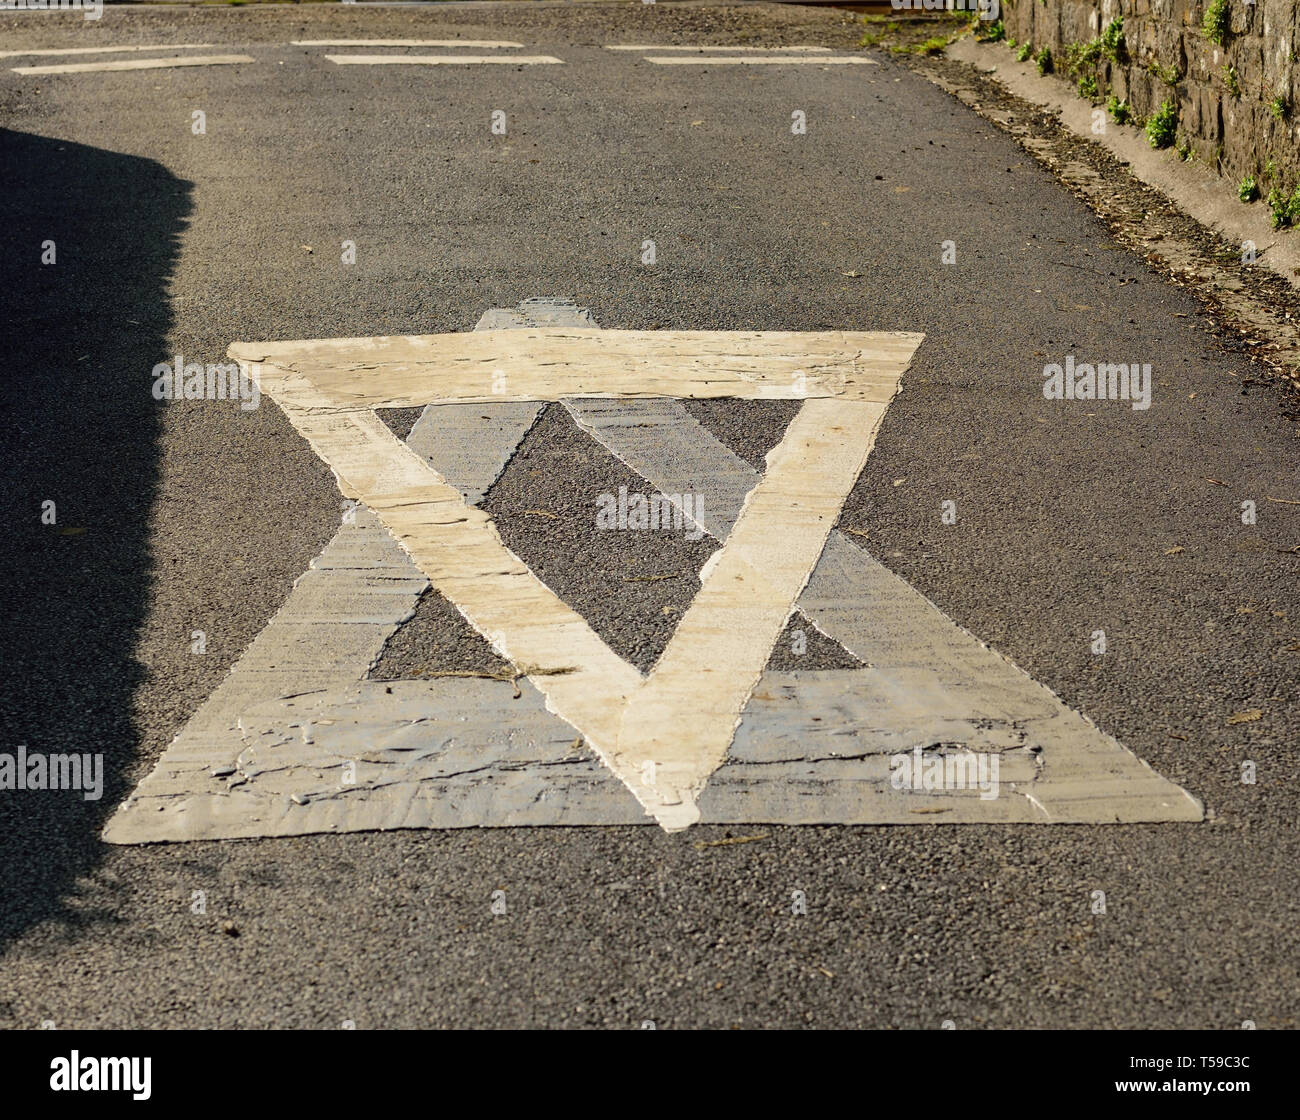 A confusing give-way sign. - Stock Image